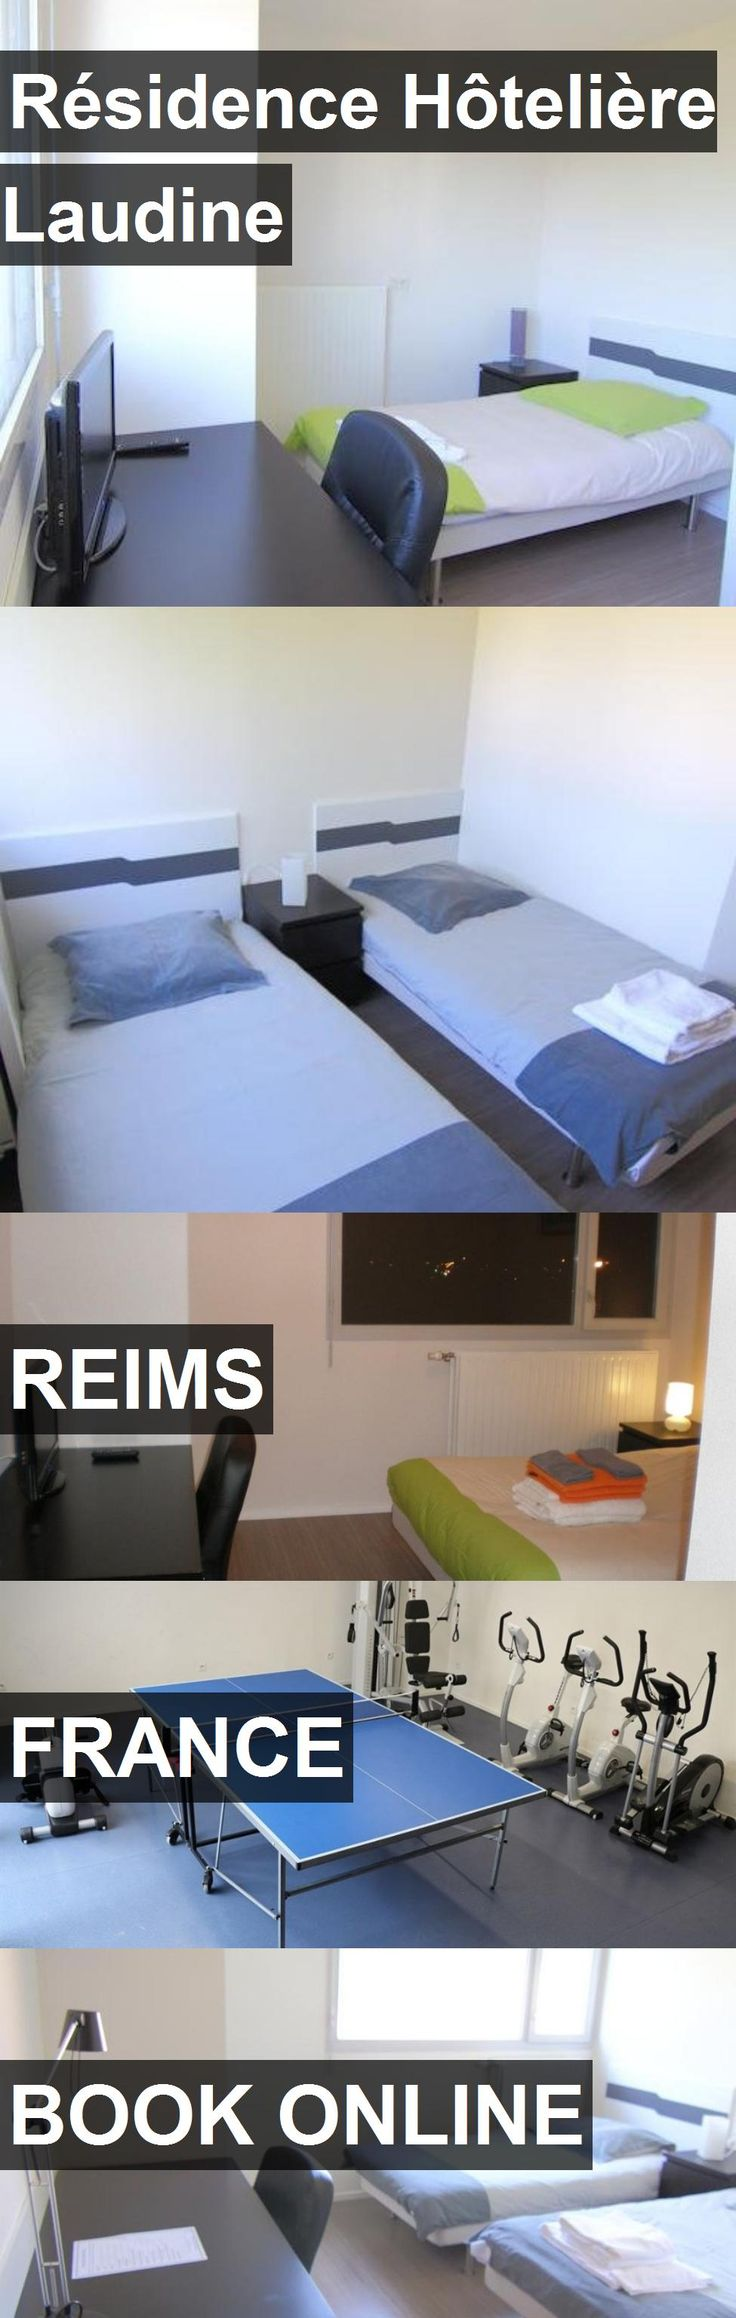 Hotel Résidence Hôtelière Laudine in Reims, France. For more information, photos, reviews and best prices please follow the link. #France #Reims #travel #vacation #hotel